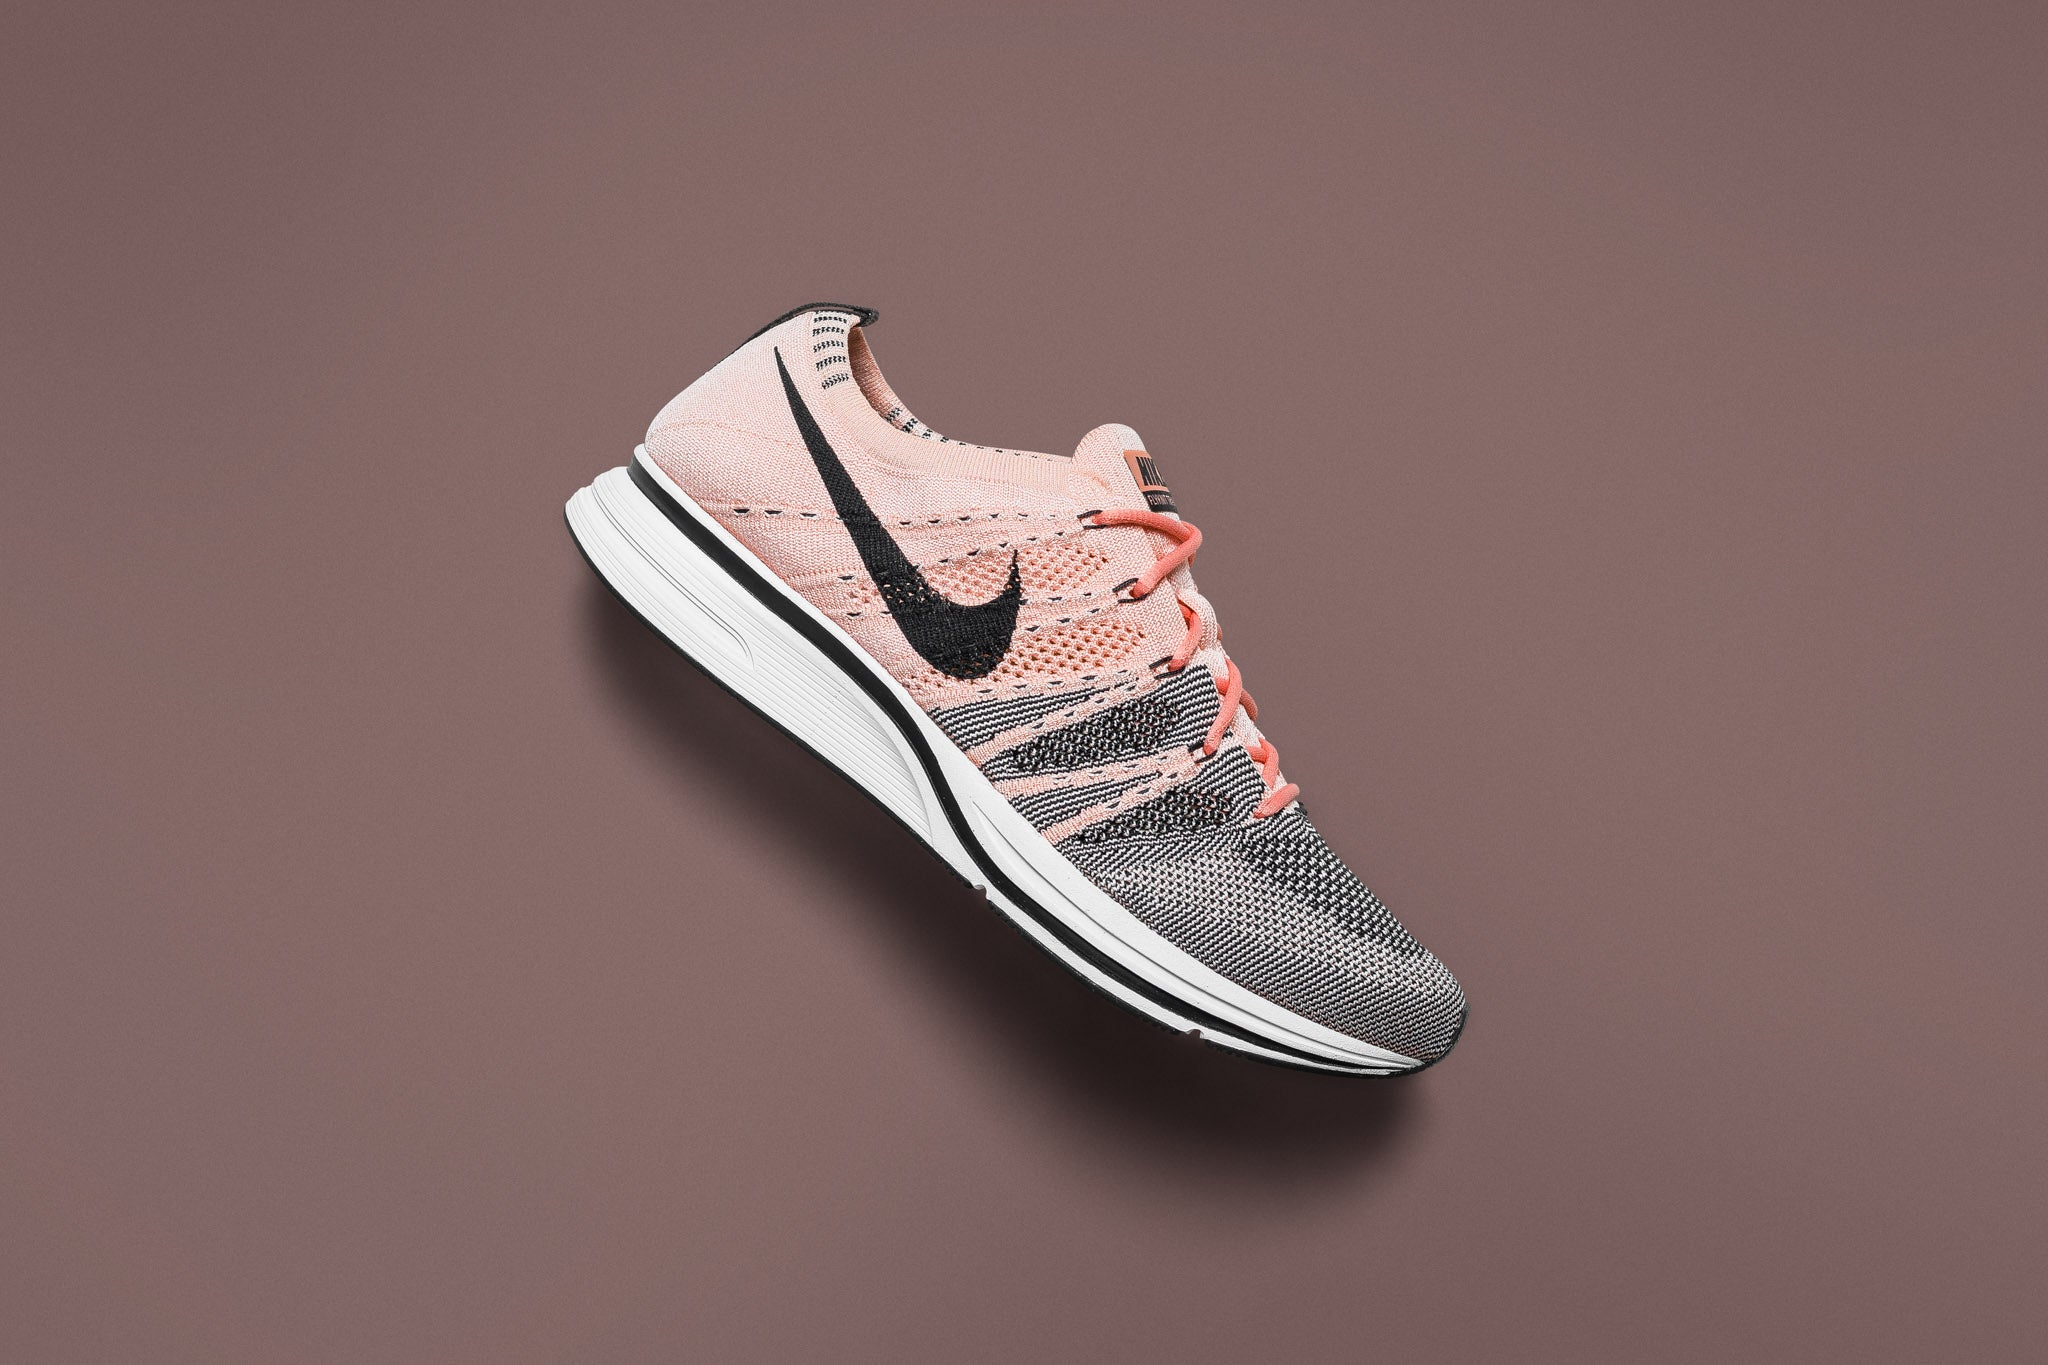 fbac11e548c4 The Nike Flyknit Trainer returns with a solar pink